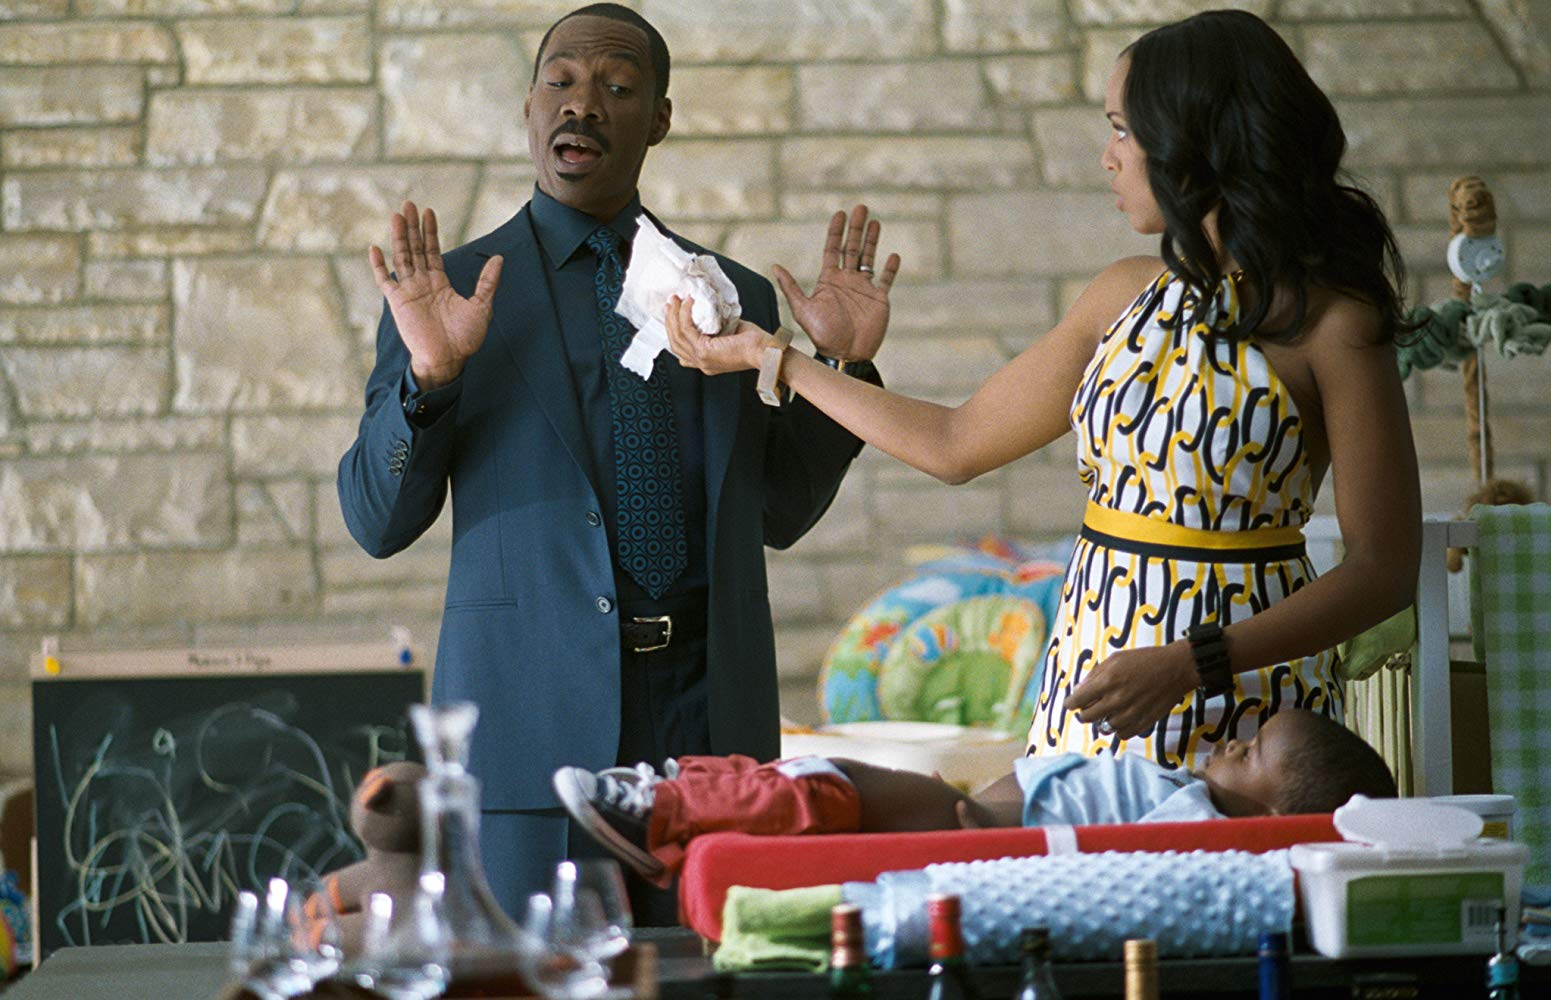 Eddie Murphy tries to avoid speaking in front of wife Kerry Washington in A Thousand Words (2012)